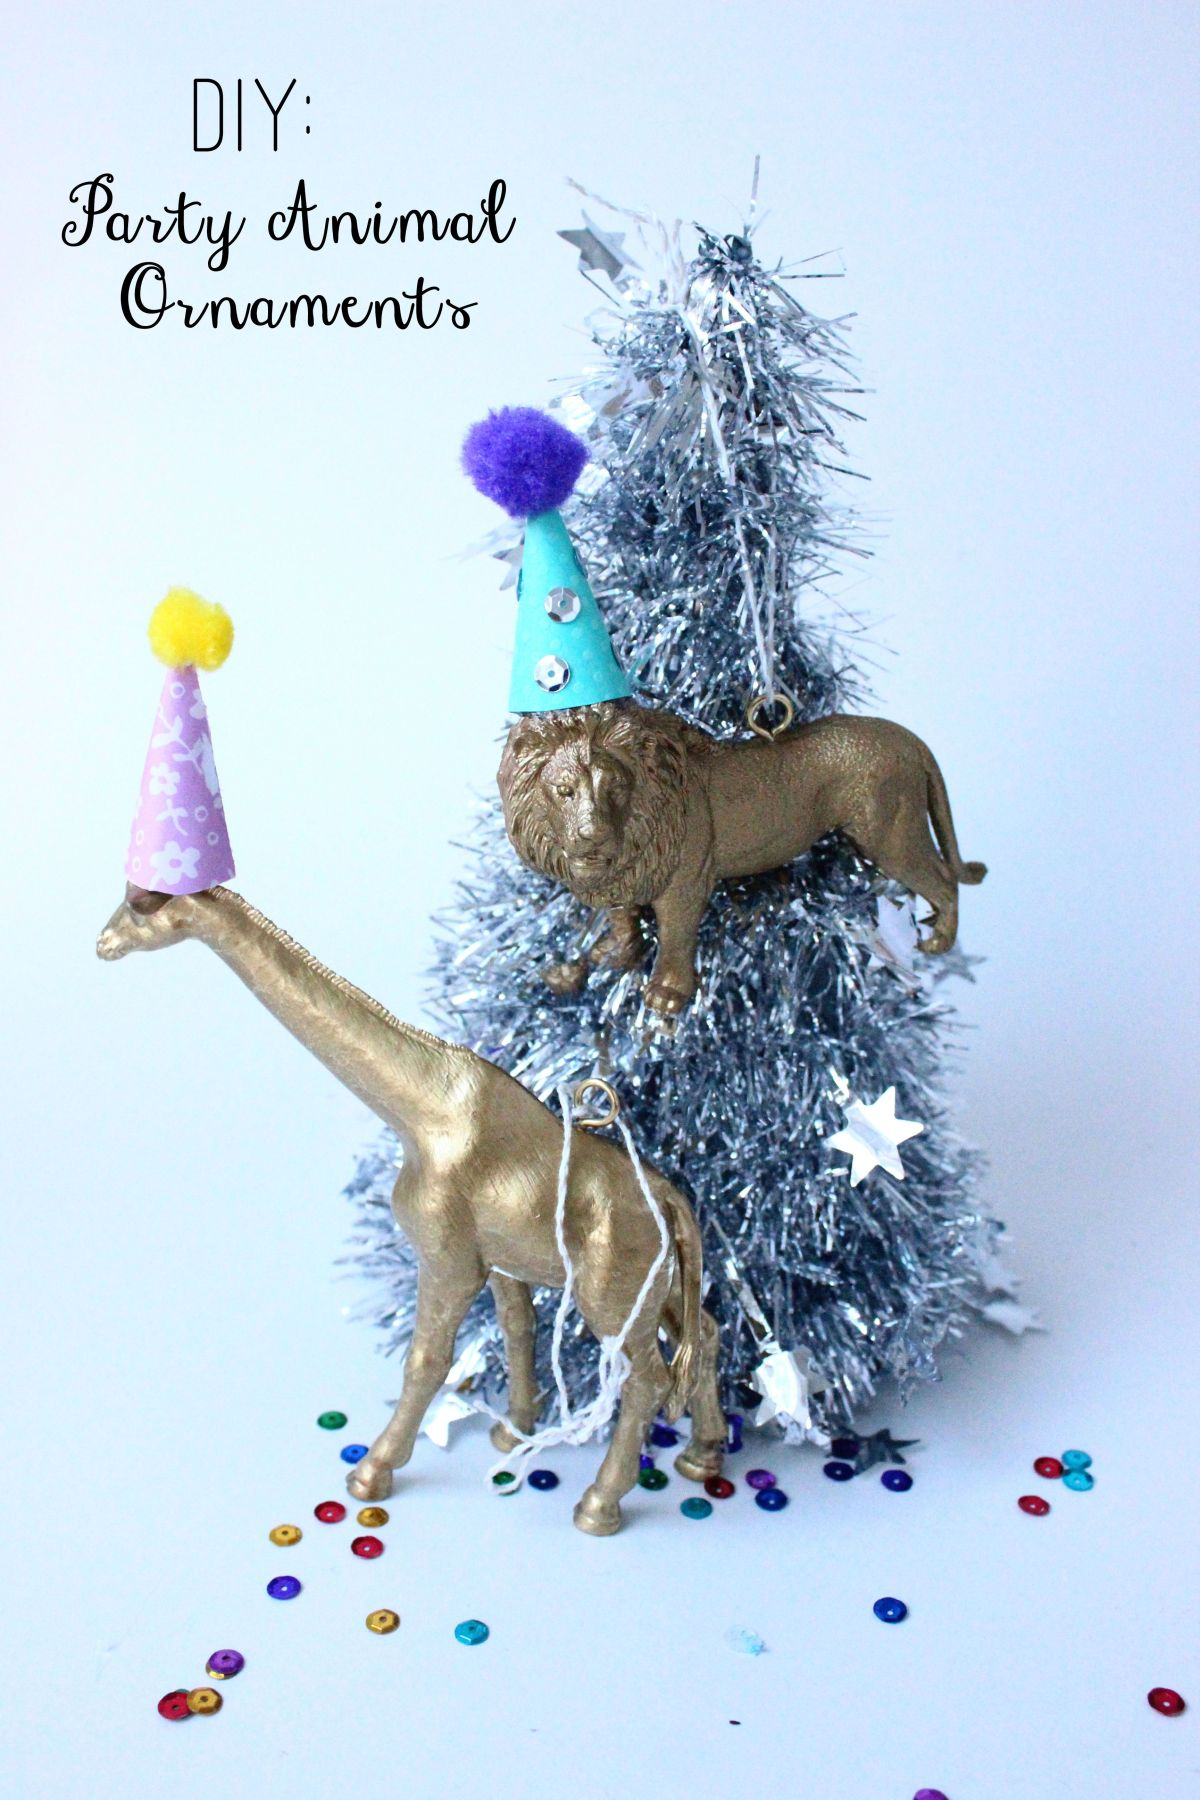 DIY: Party Animal Ornaments